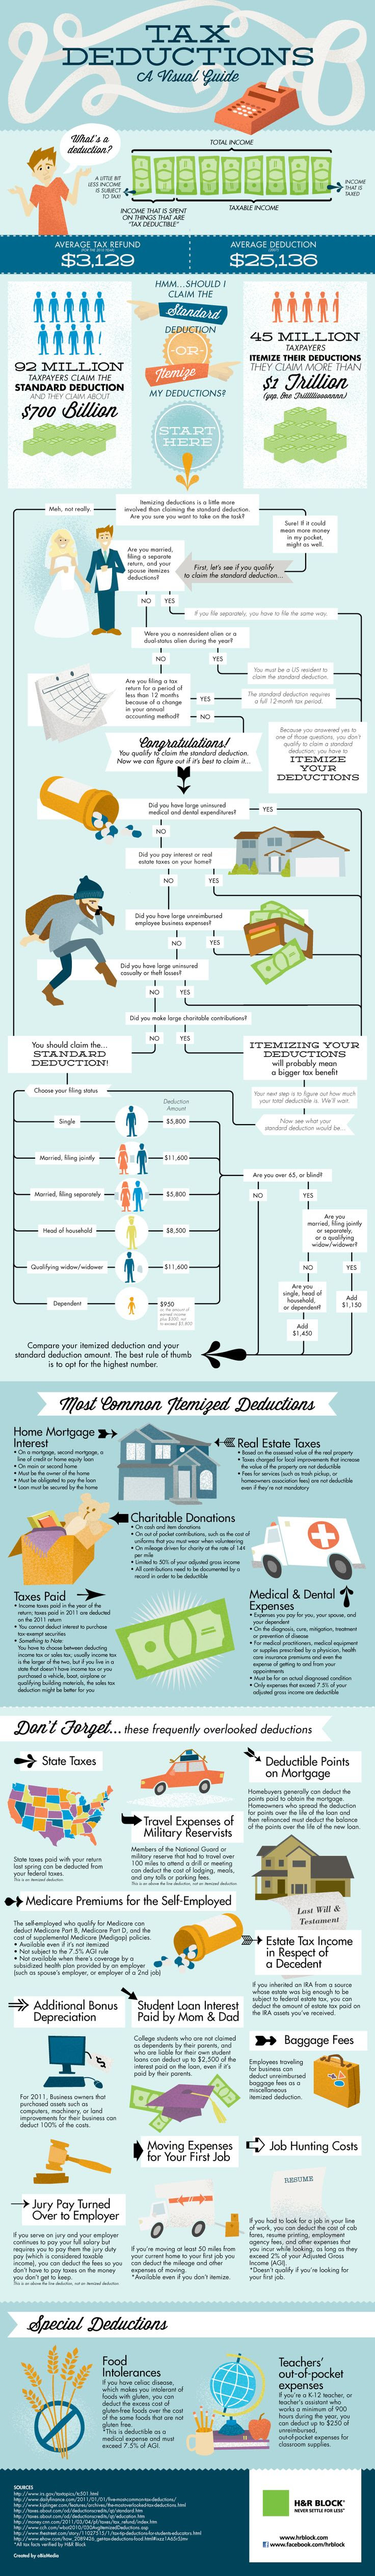 A Visual Guide To Tax Deductio